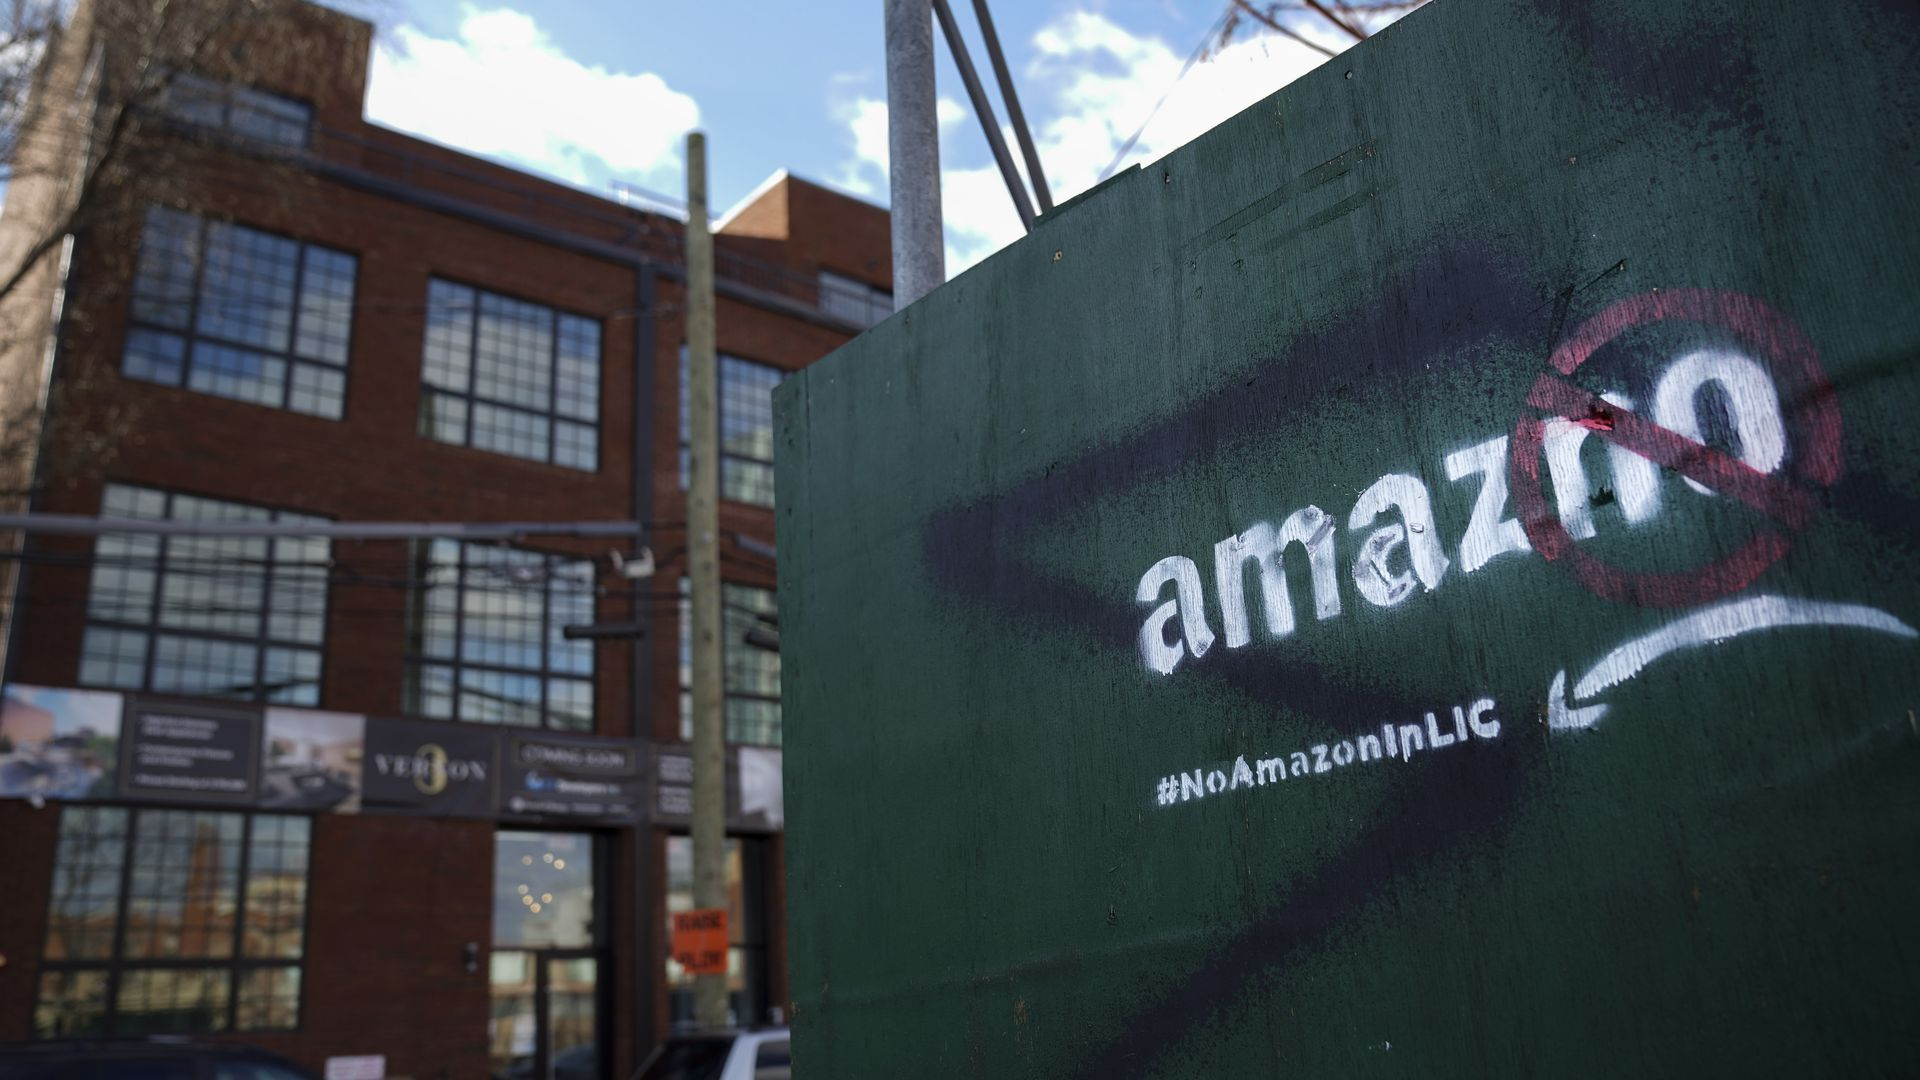 A protest message directed at Amazon  in the Long Island City.